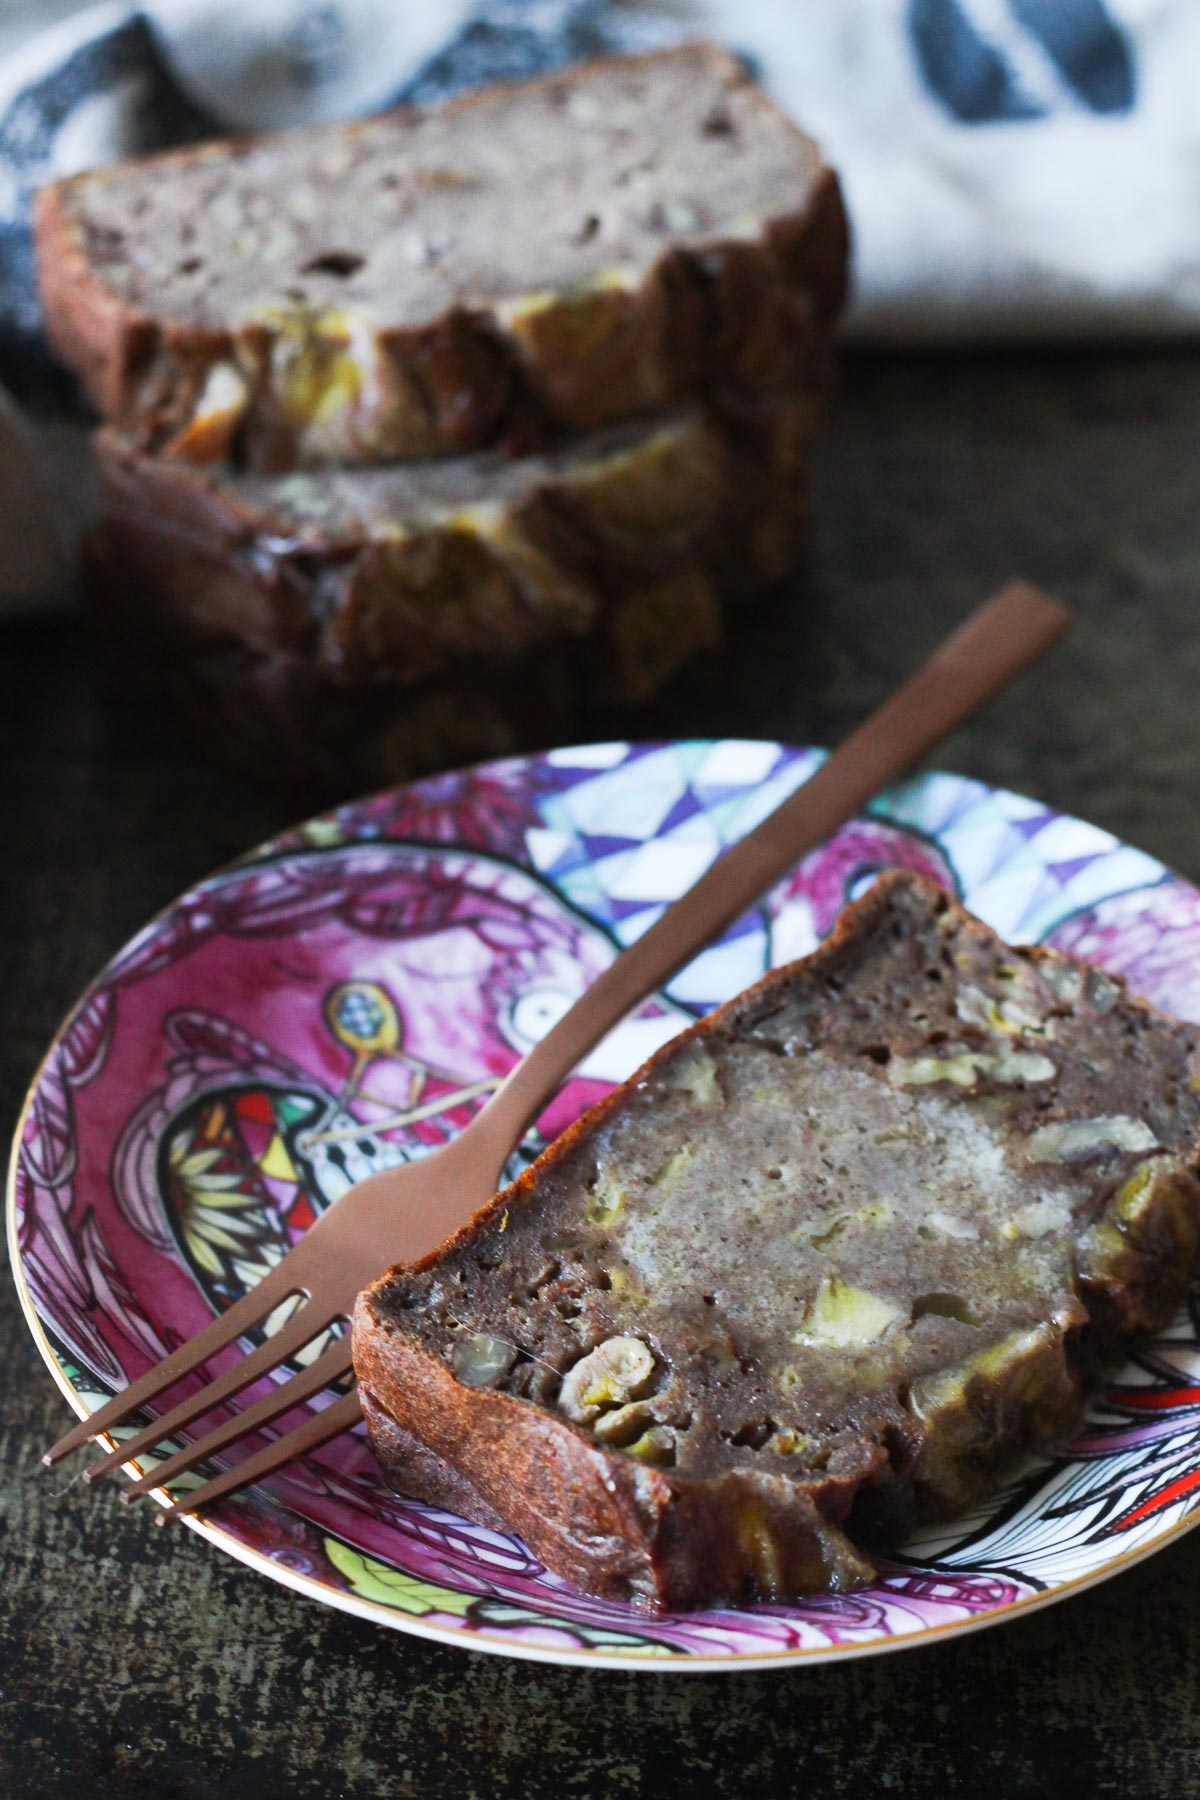 Banana bread served on a decorative plate with slices in the background